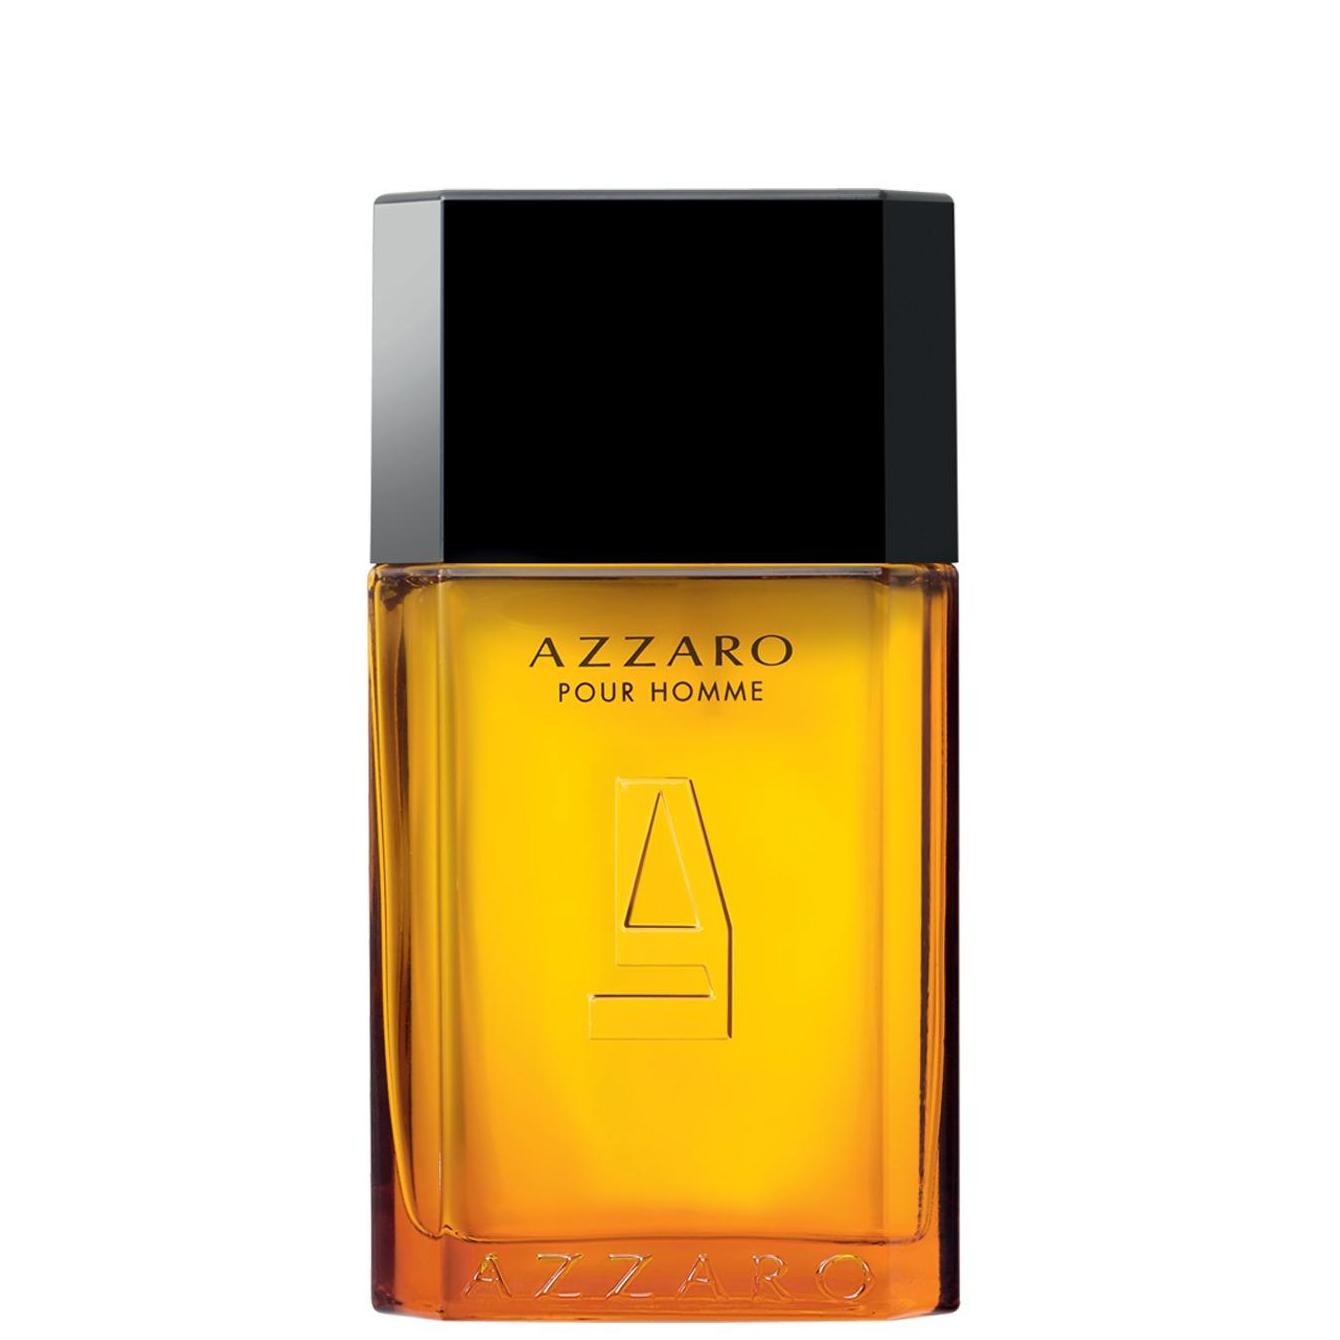 e5dfa794214 Azzaro Fragrances Philippines - Azzaro Mens and Womens Fragrance for ...